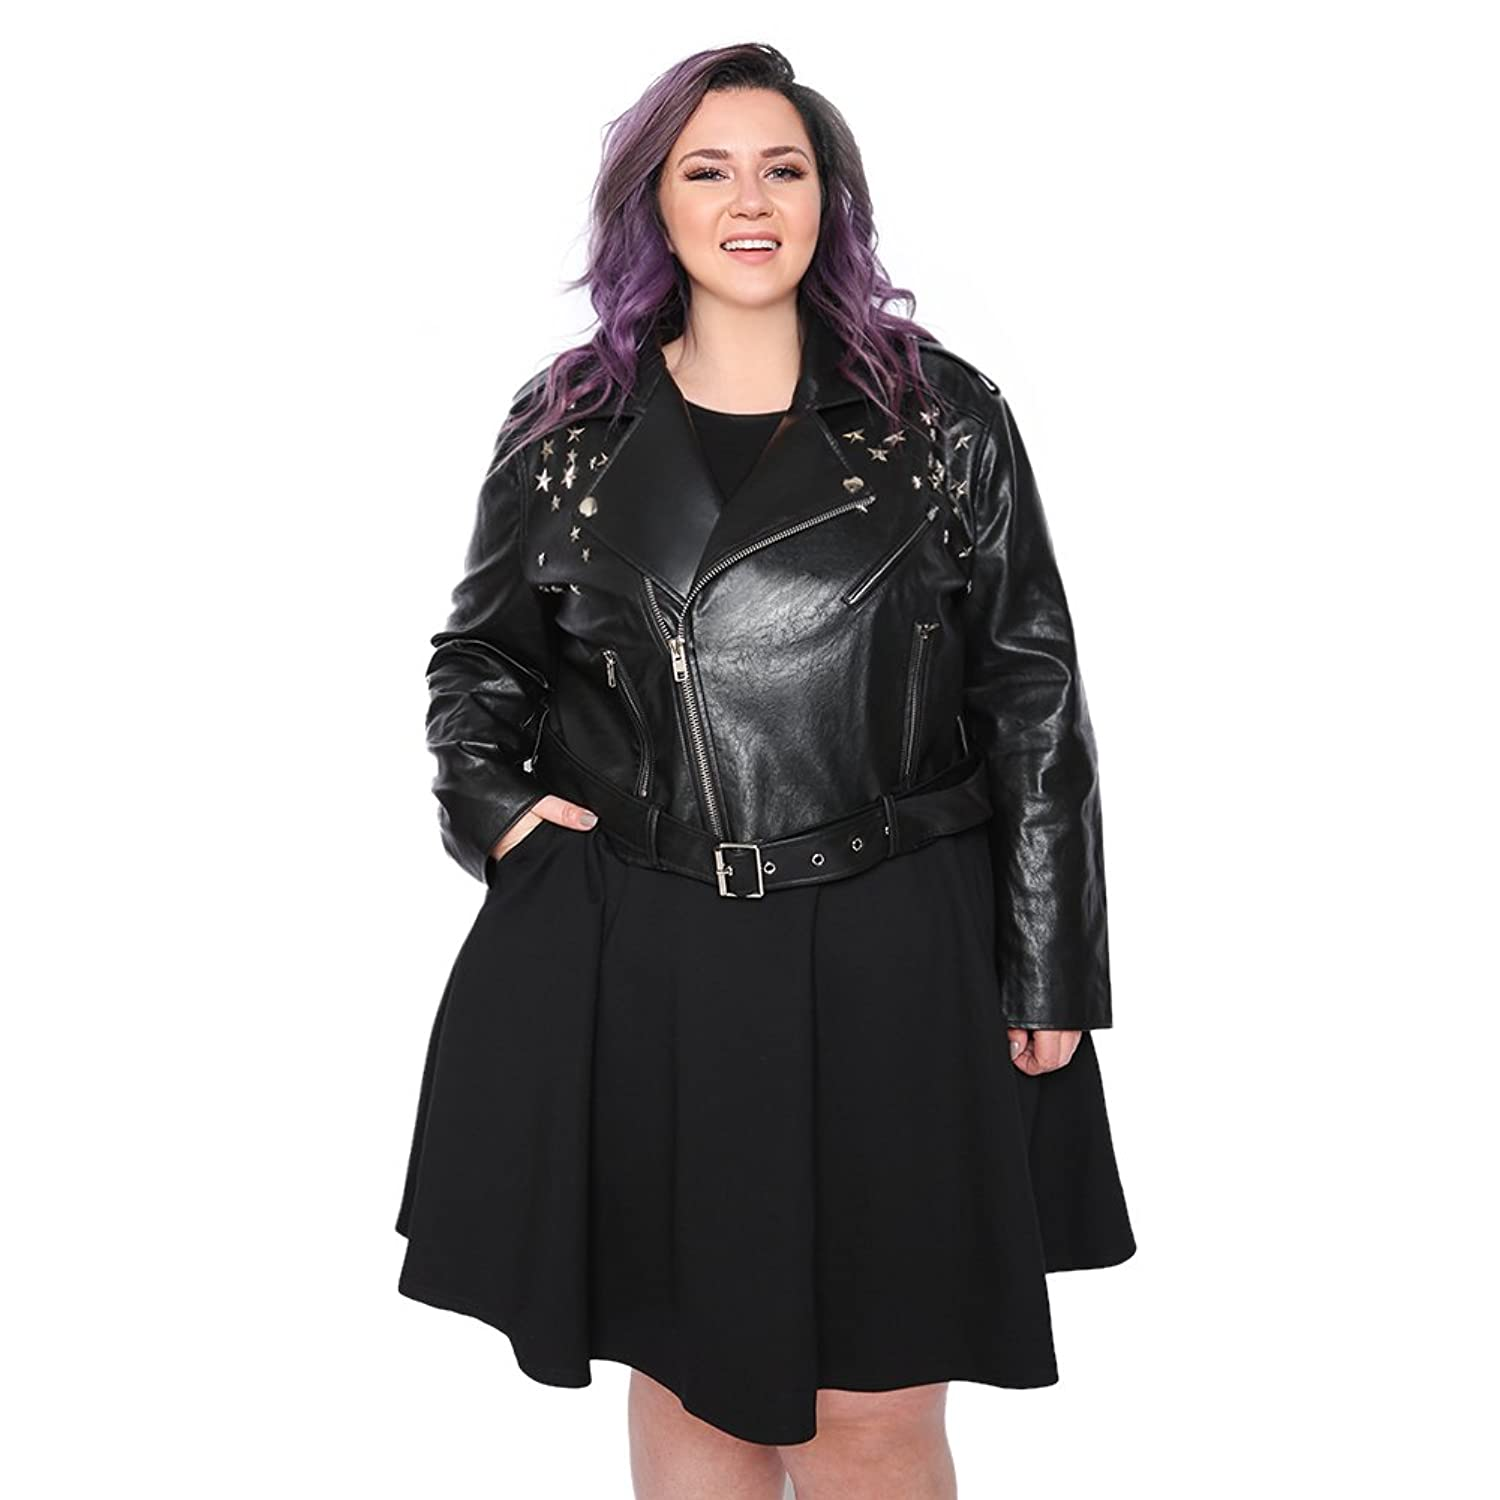 08c99e2a Well Made And Good Material: The Astra Moto Jacket features an asymmetrical  zip front. Structured for warmth and fit, this plus size moto jacket has ...